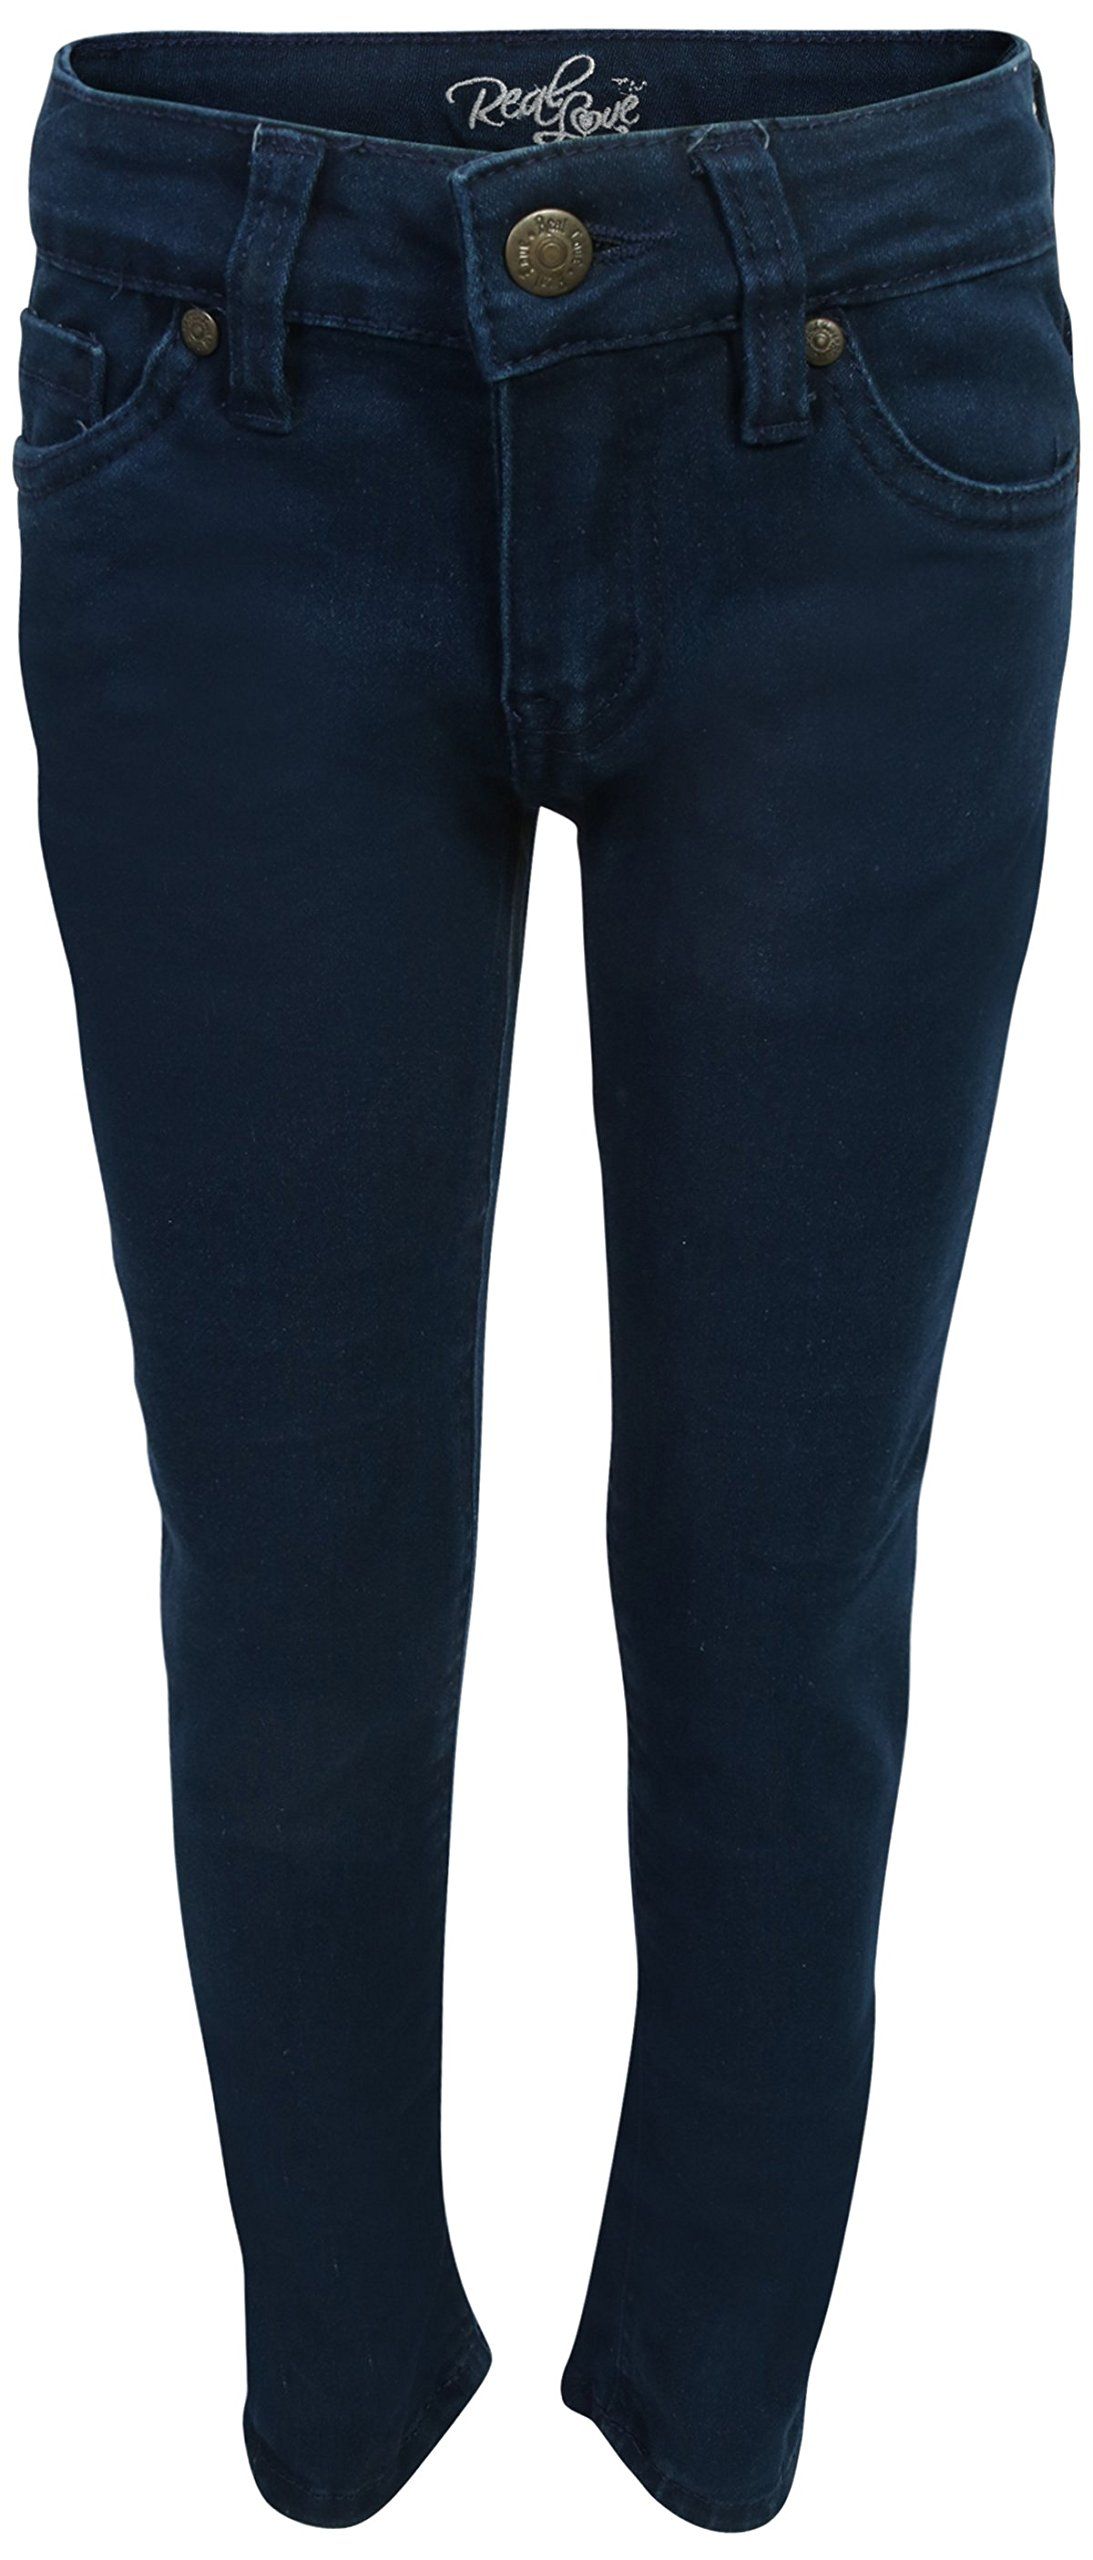 Real Love Girls Skinny Jeans, Black & Blue (2 Pack) Size 6 by Real Love (Image #4)